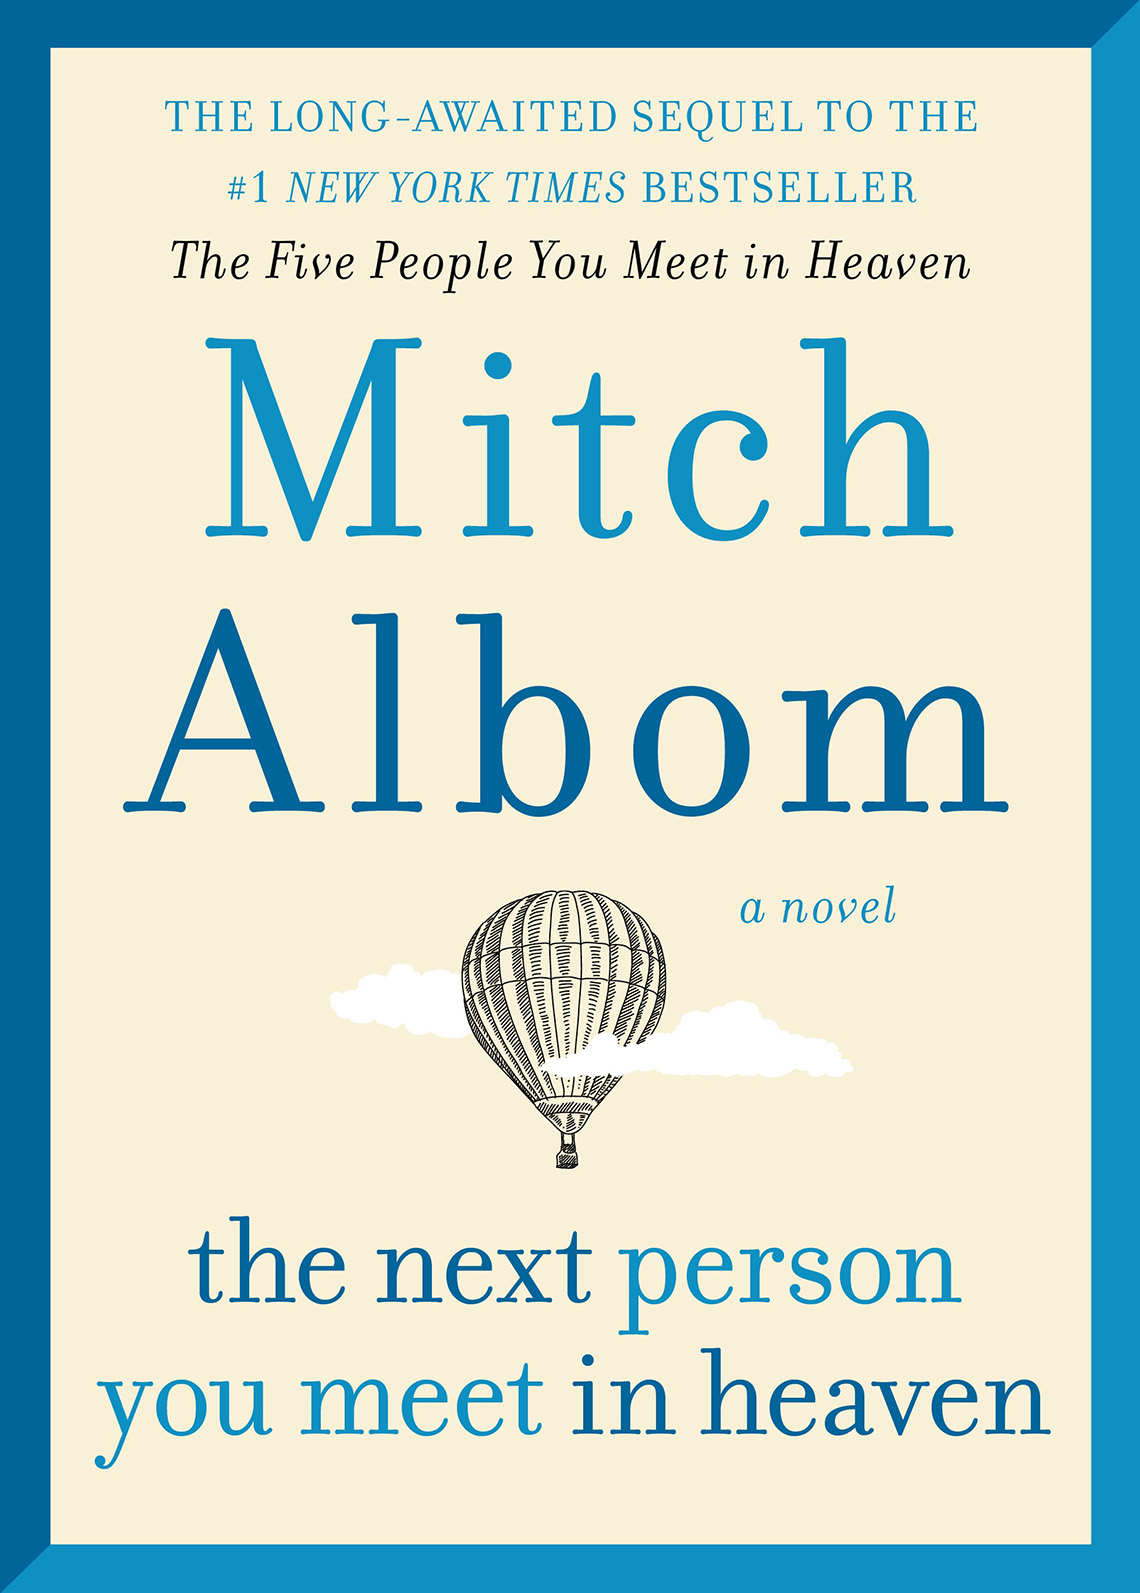 """Book cover, text reads """"The long-awaited sequel to the #1 New York Times Bestseller, The Five People You Met in Heaven, Mitch Albom, a novel, the next person you meet in heaven."""